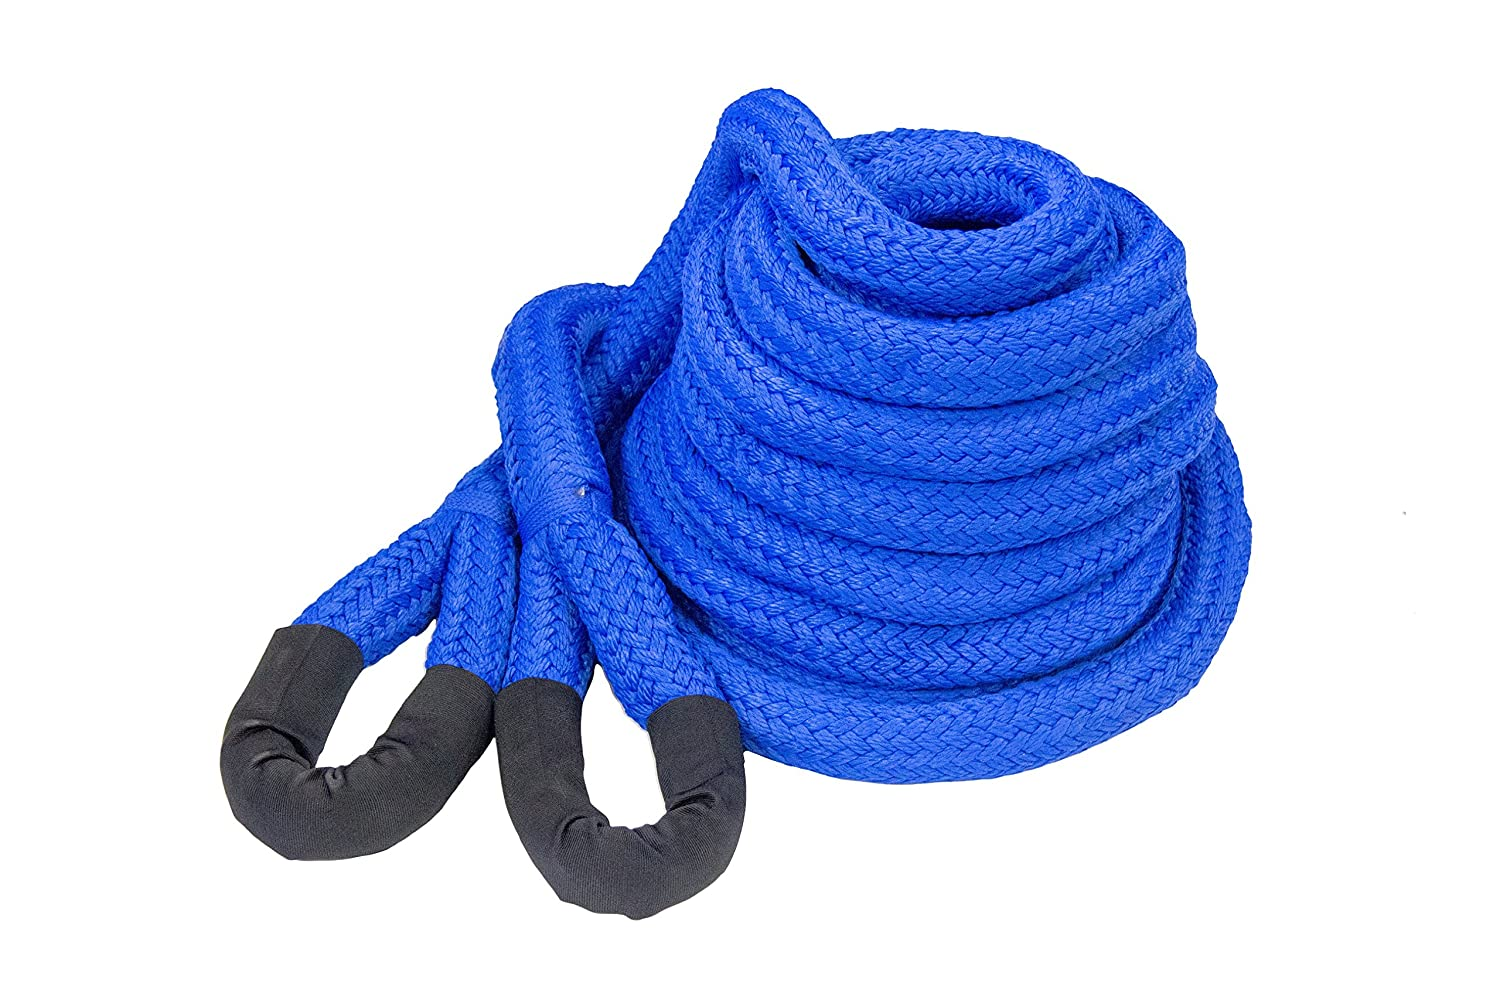 DitchPig 447521 Kinetic Energy Vehicle Recovery Double Nylon Braided Rope, 7/8' x 20' 7/8 x 20' 448521